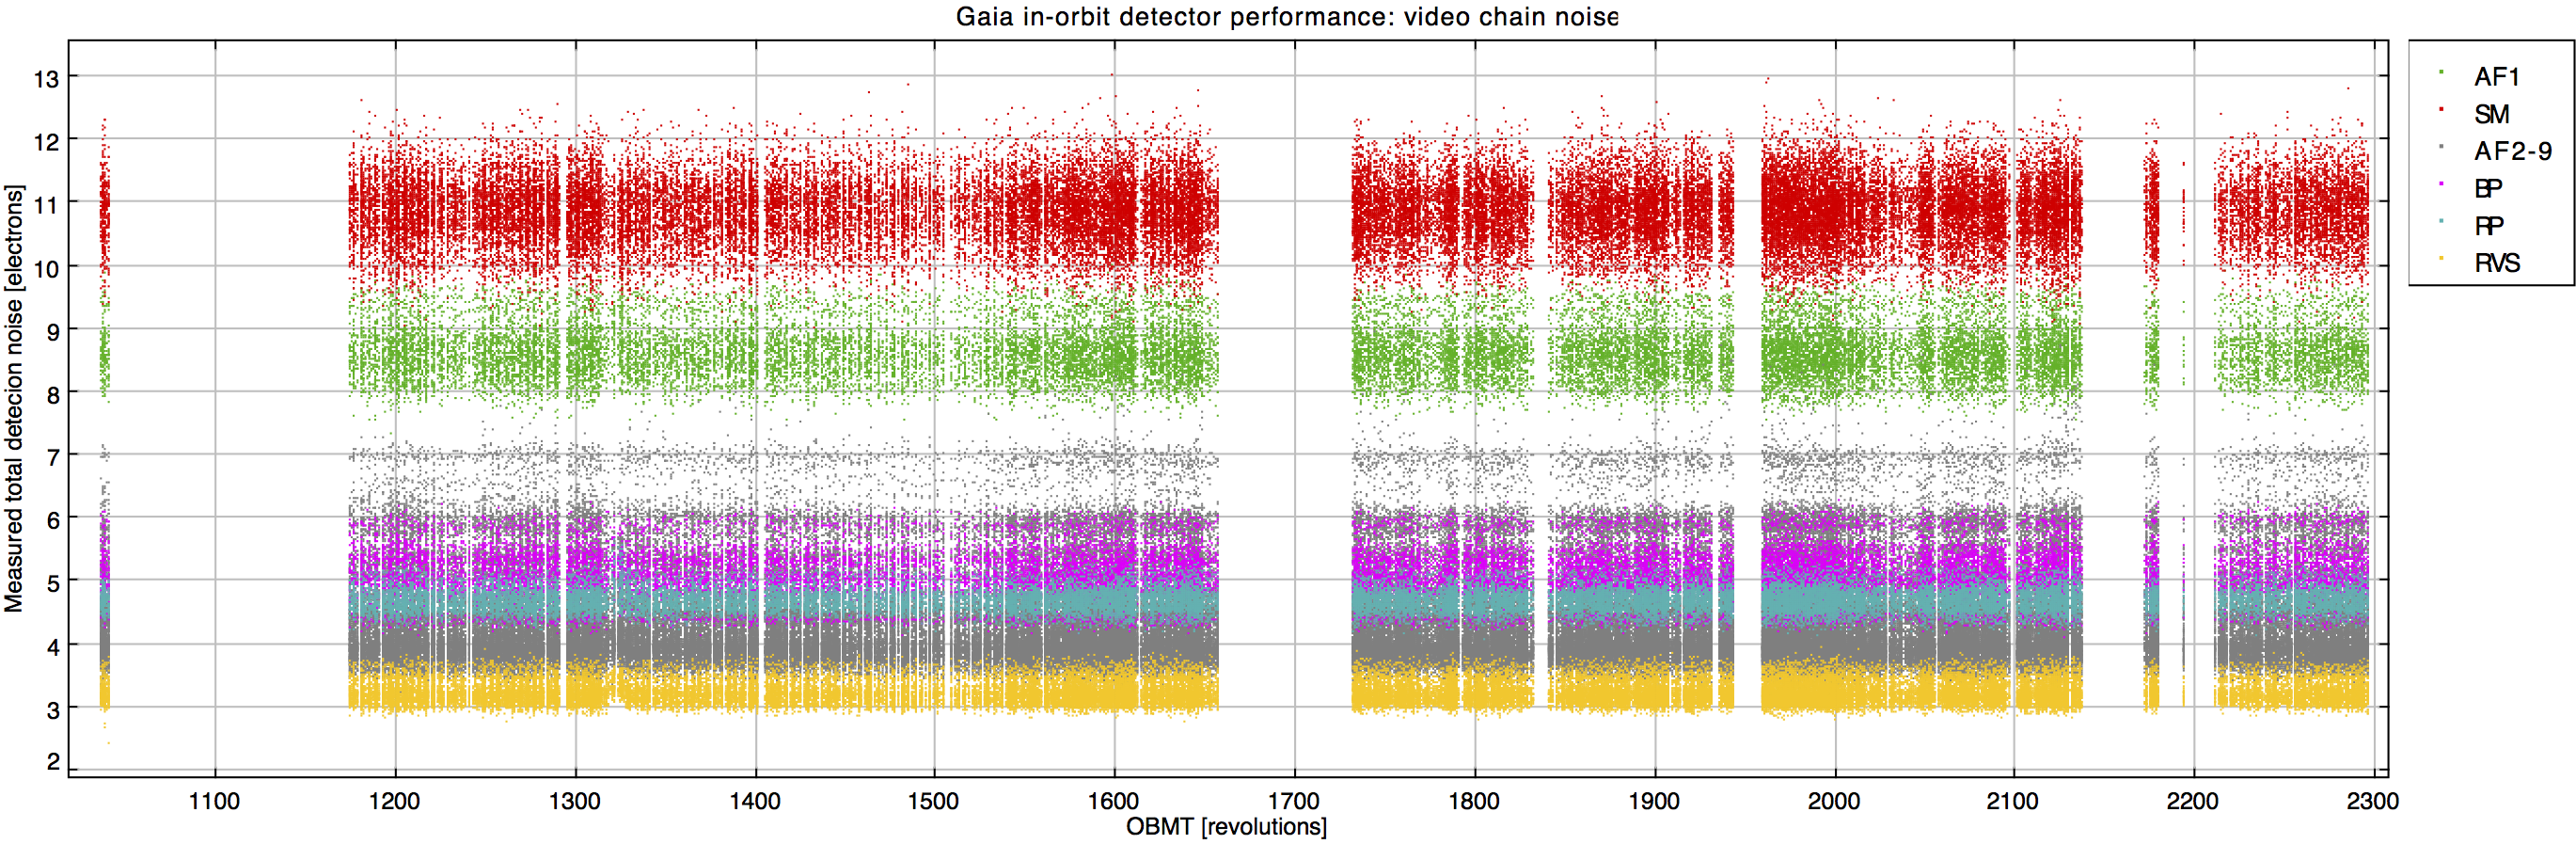 Gaia data release 1 2352 offset stability nvjuhfo Image collections